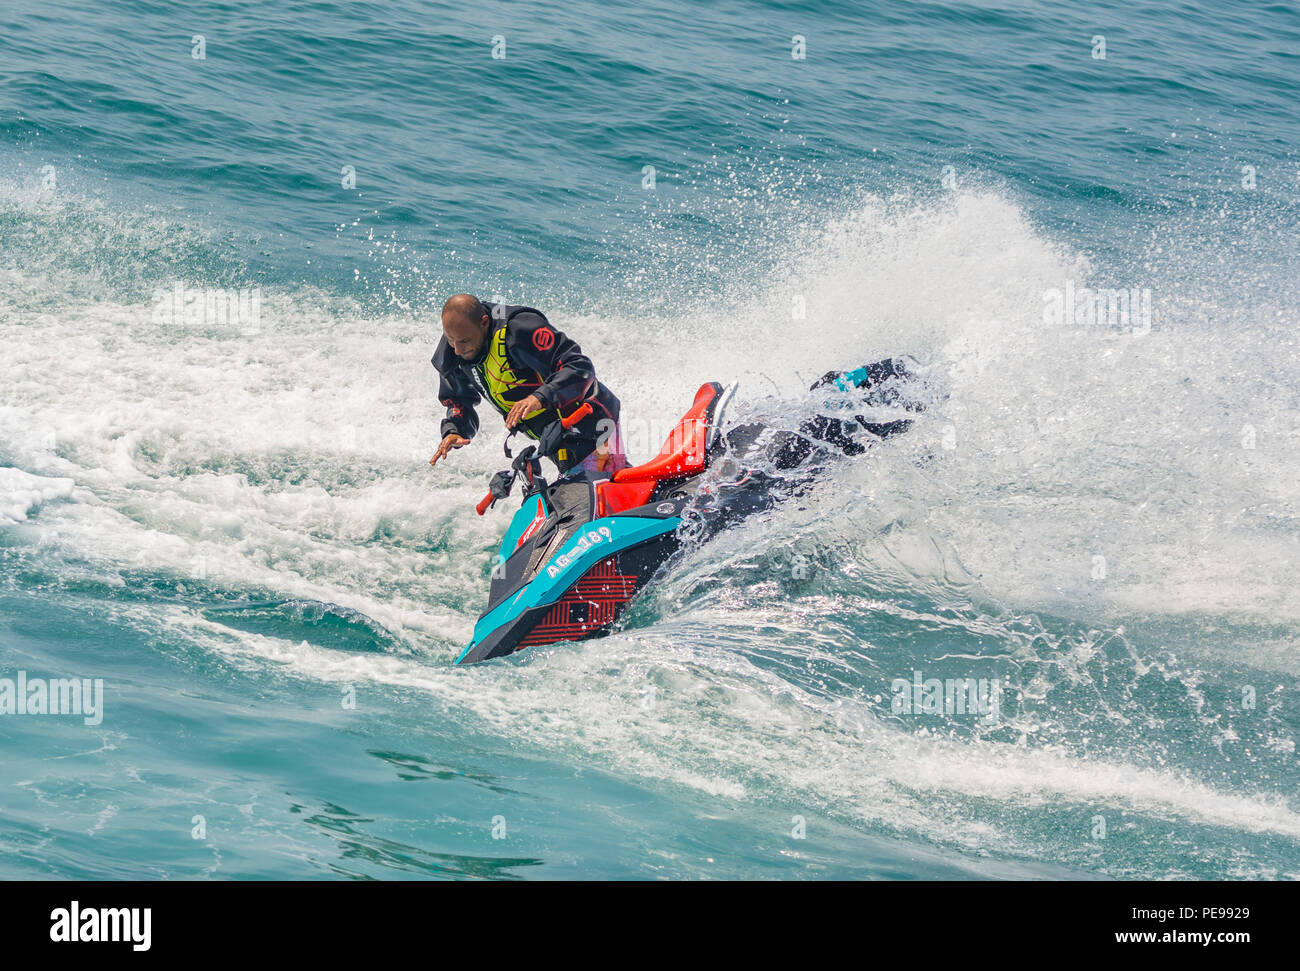 Jet Ski Stock Photos & Jet Ski Stock Images - Alamy